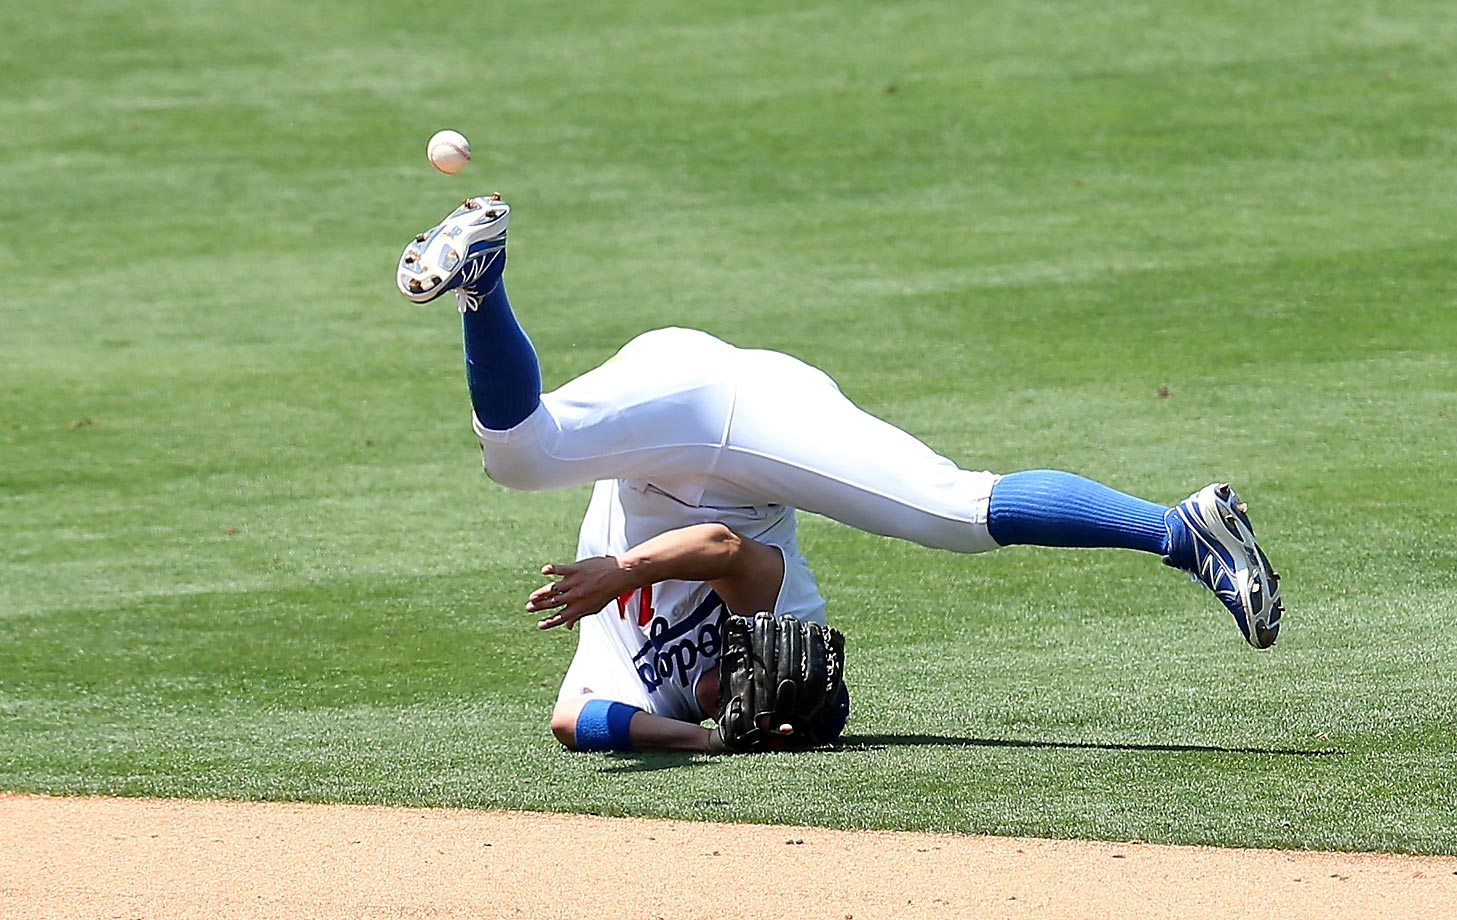 Shortstop Kike Hernandez of the Los Angeles Dodgers flips the ball to second base in an unsuccessful attempt to get a runner out in a game against the New York Mets.